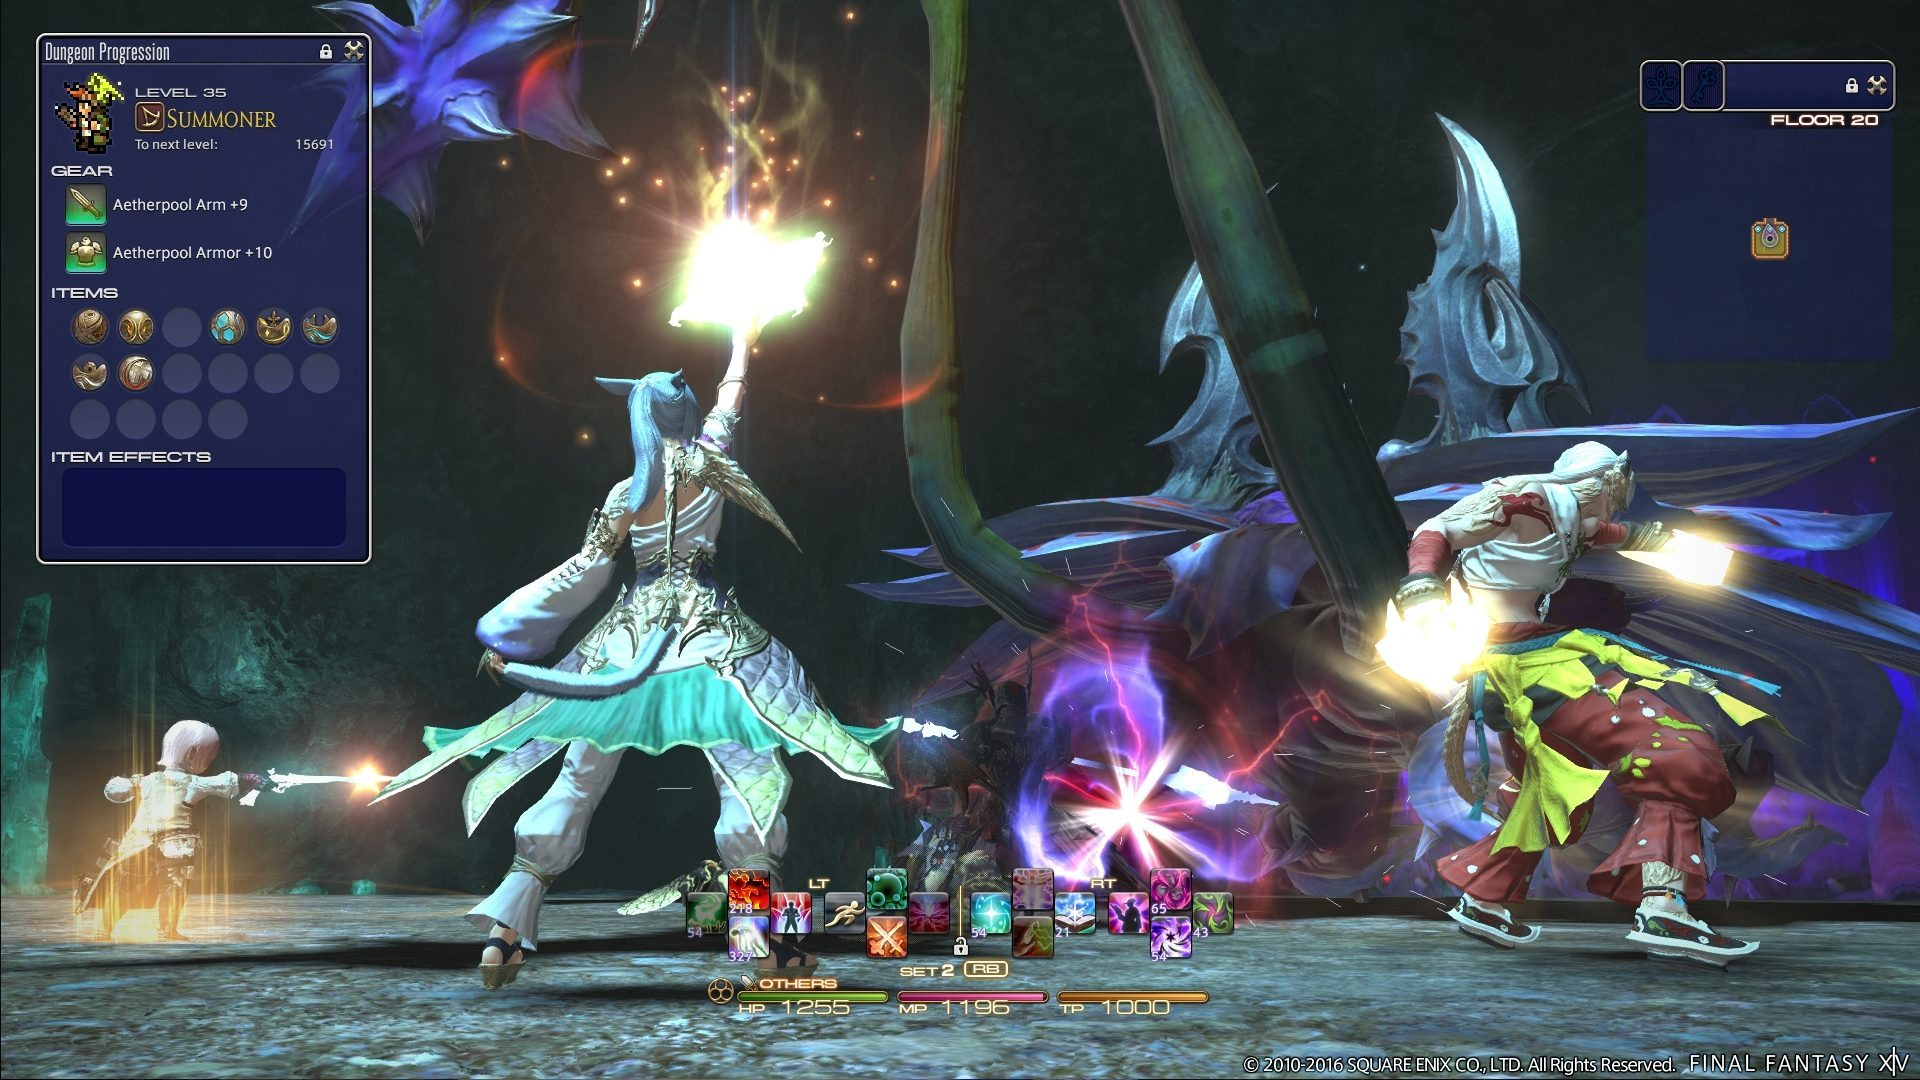 FINAL FANTASY XIV Now Has 6+ Million Global Players